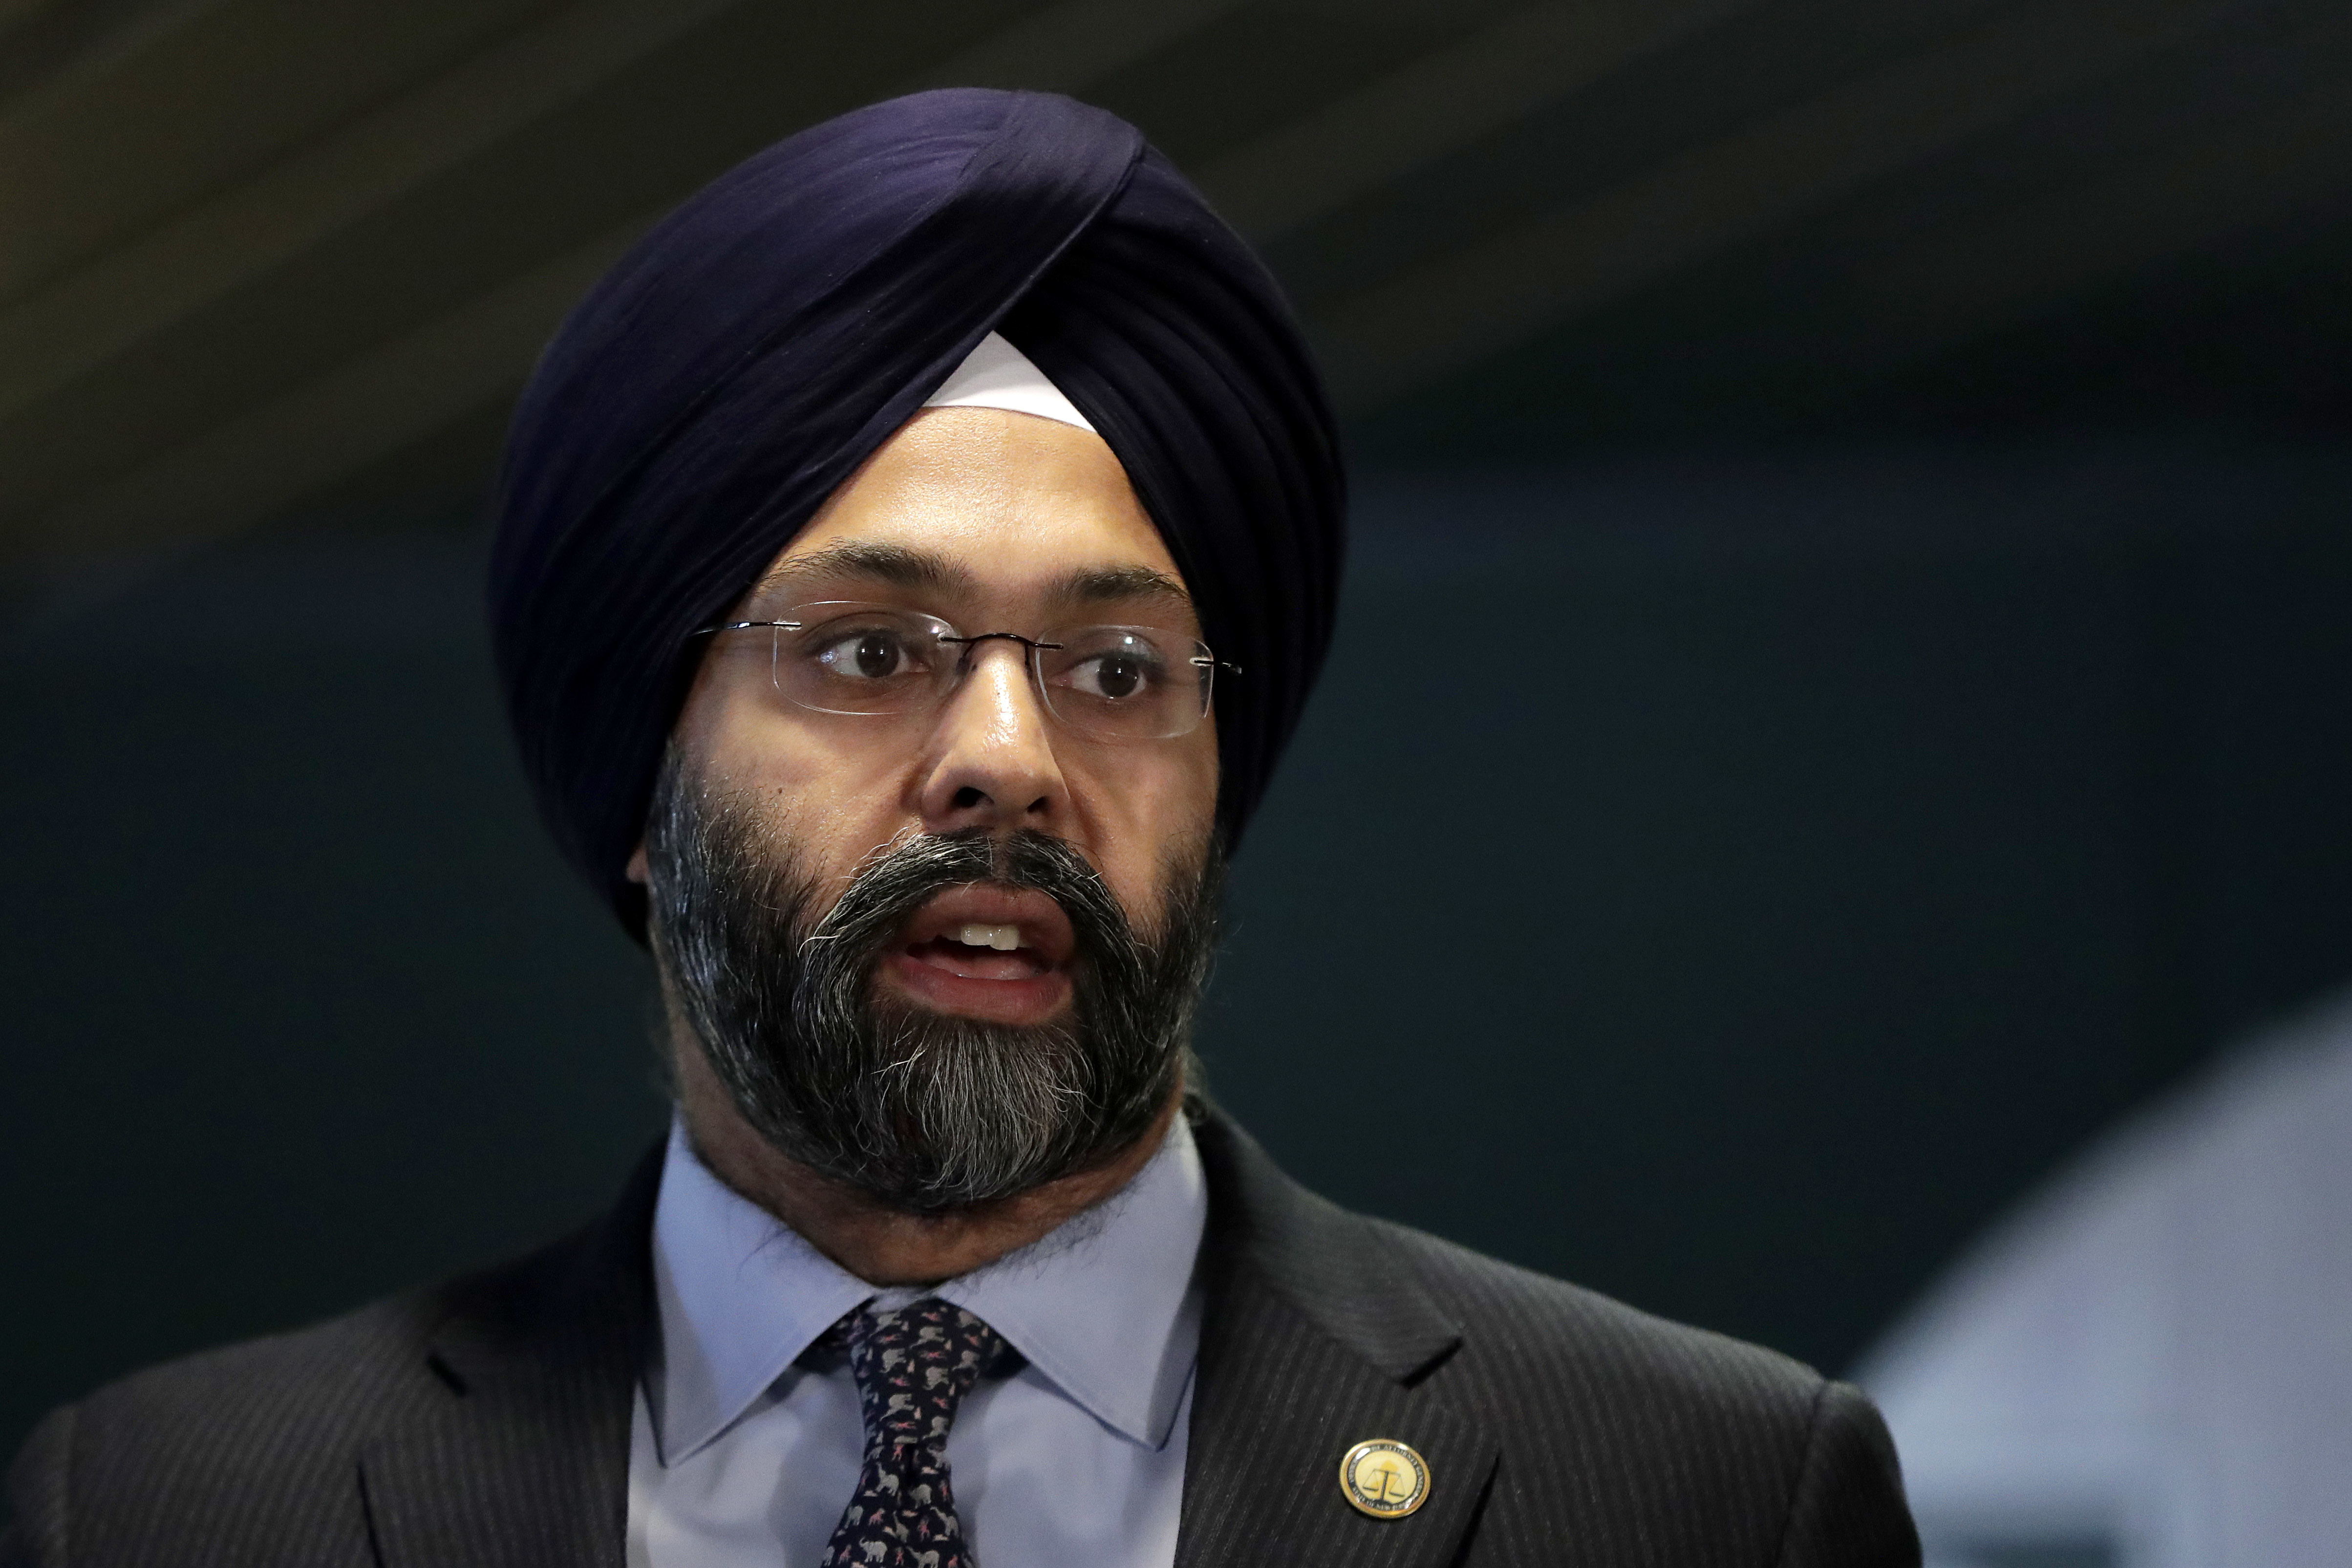 Cape May County sues Grewal over directive blocking federal immigration agreements